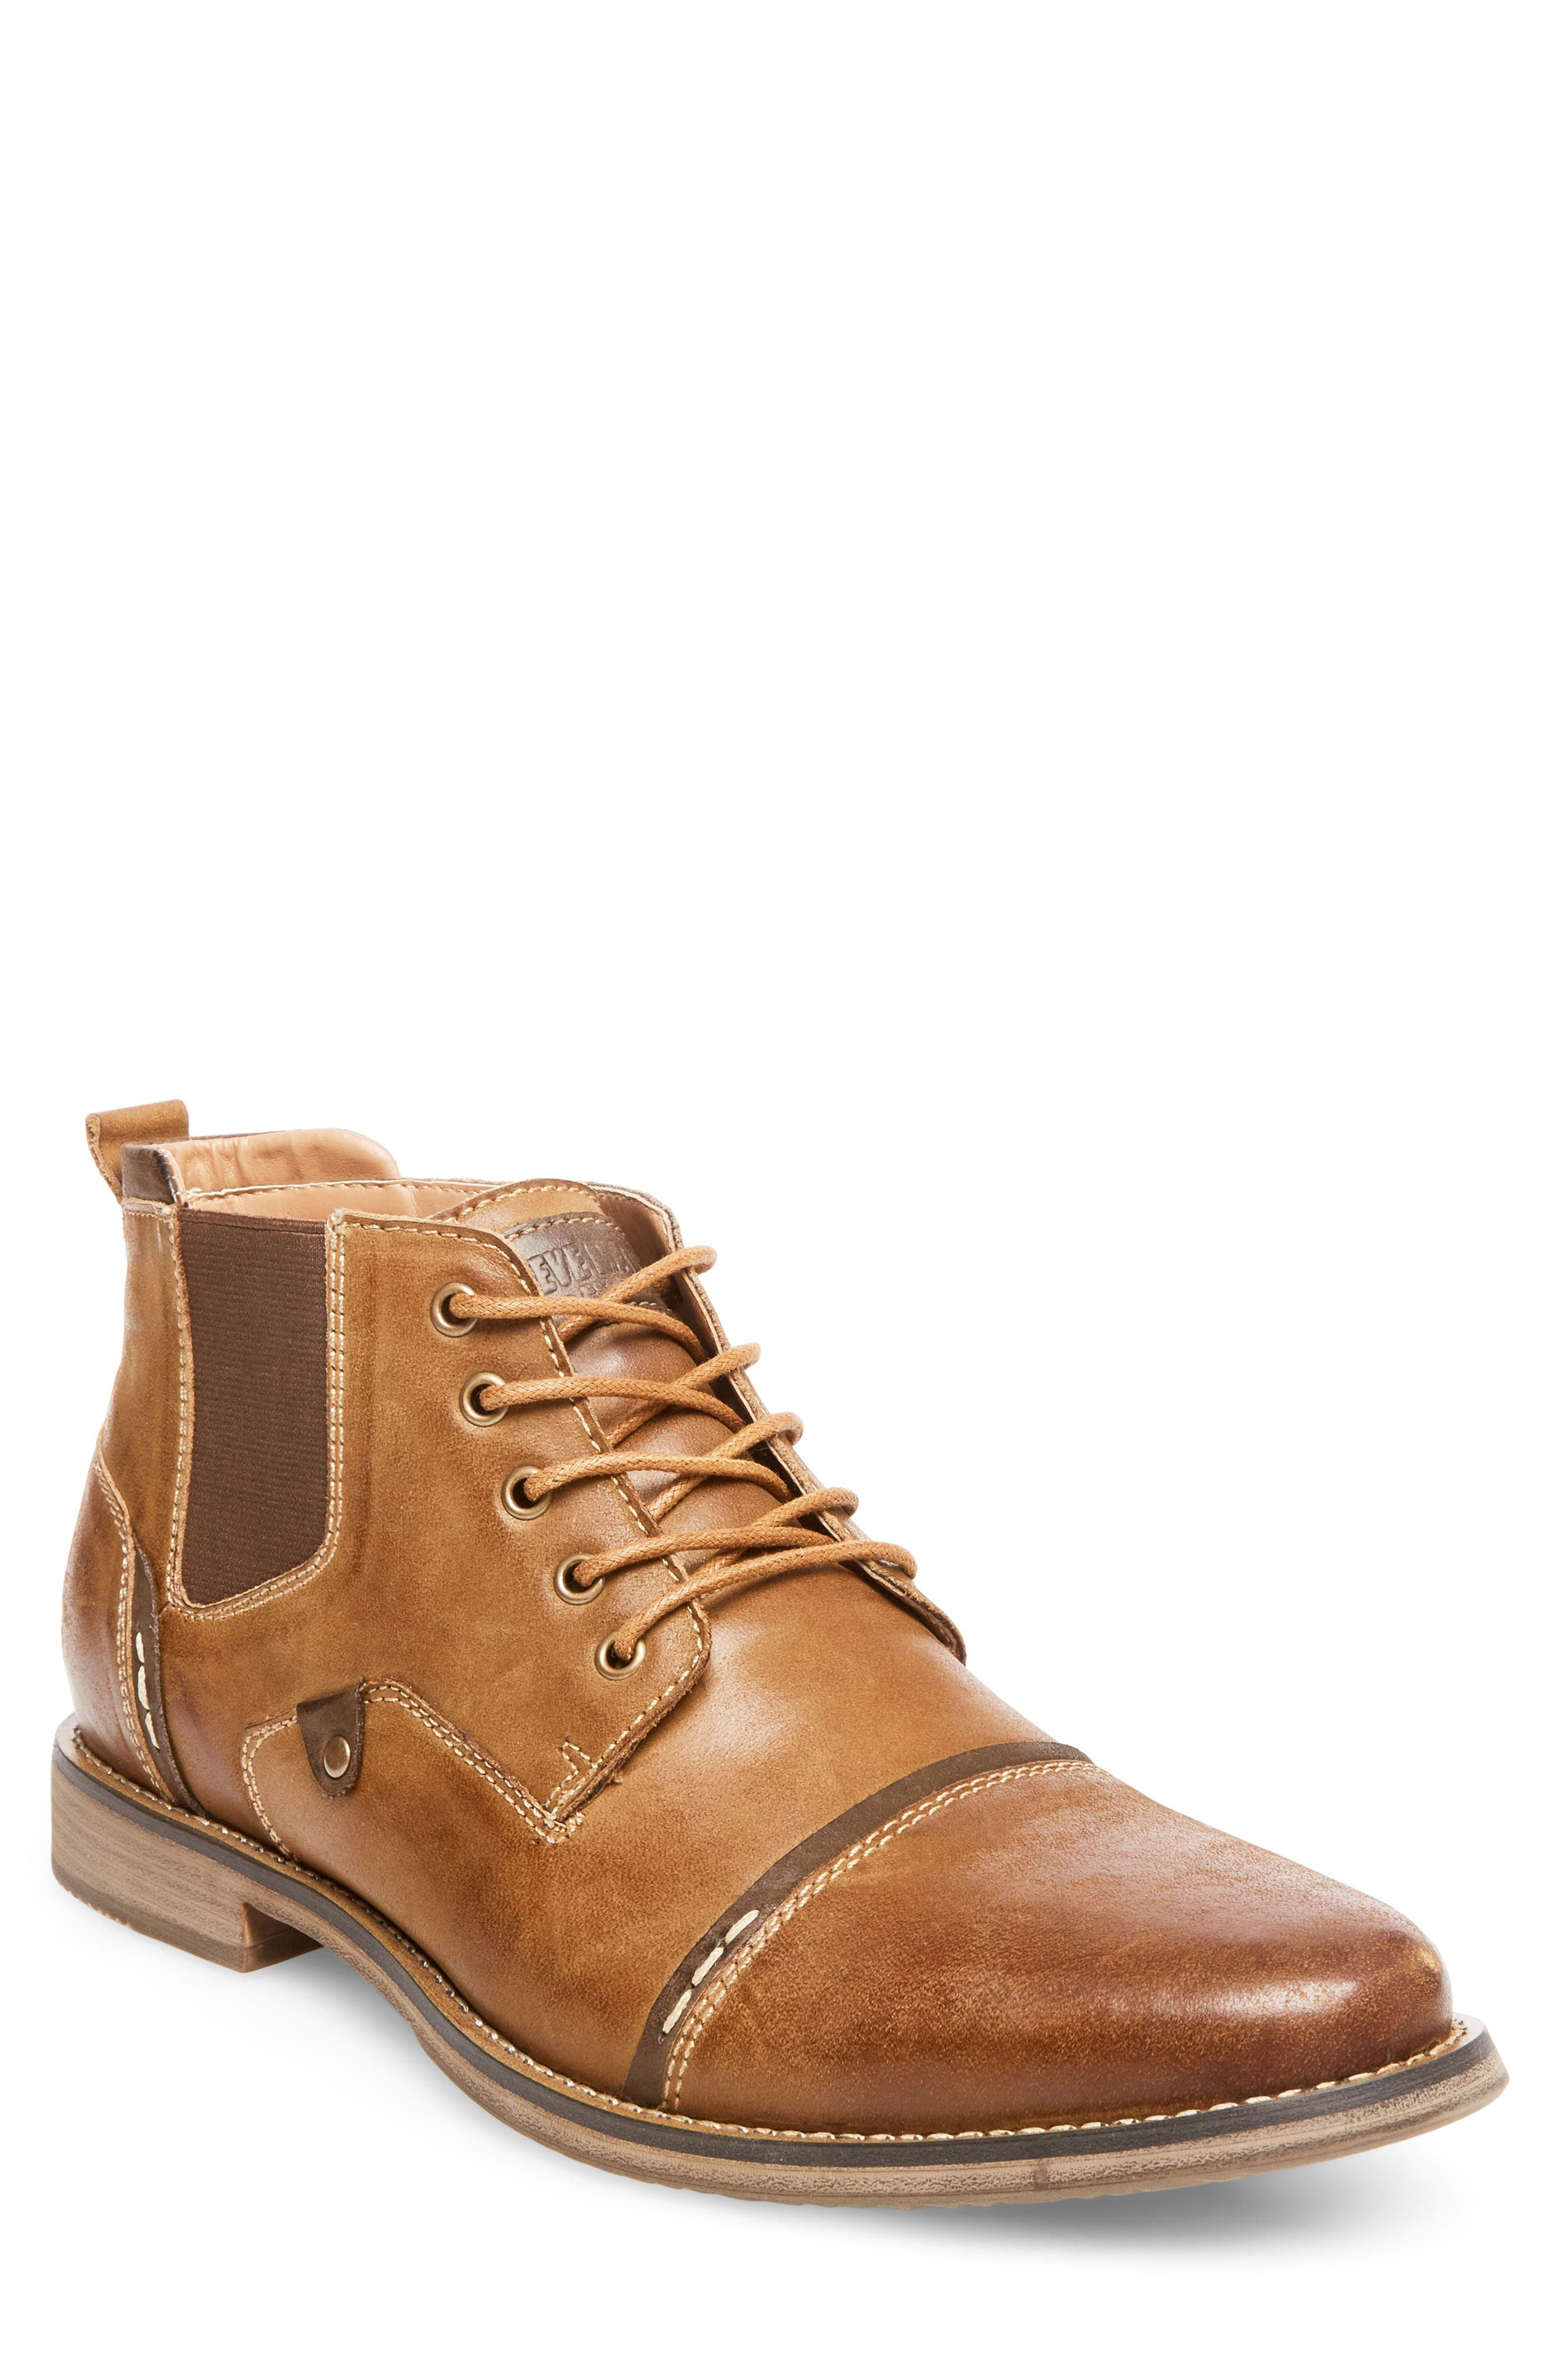 Proxy Cap Toe Boot,                         Main,                         color, 200